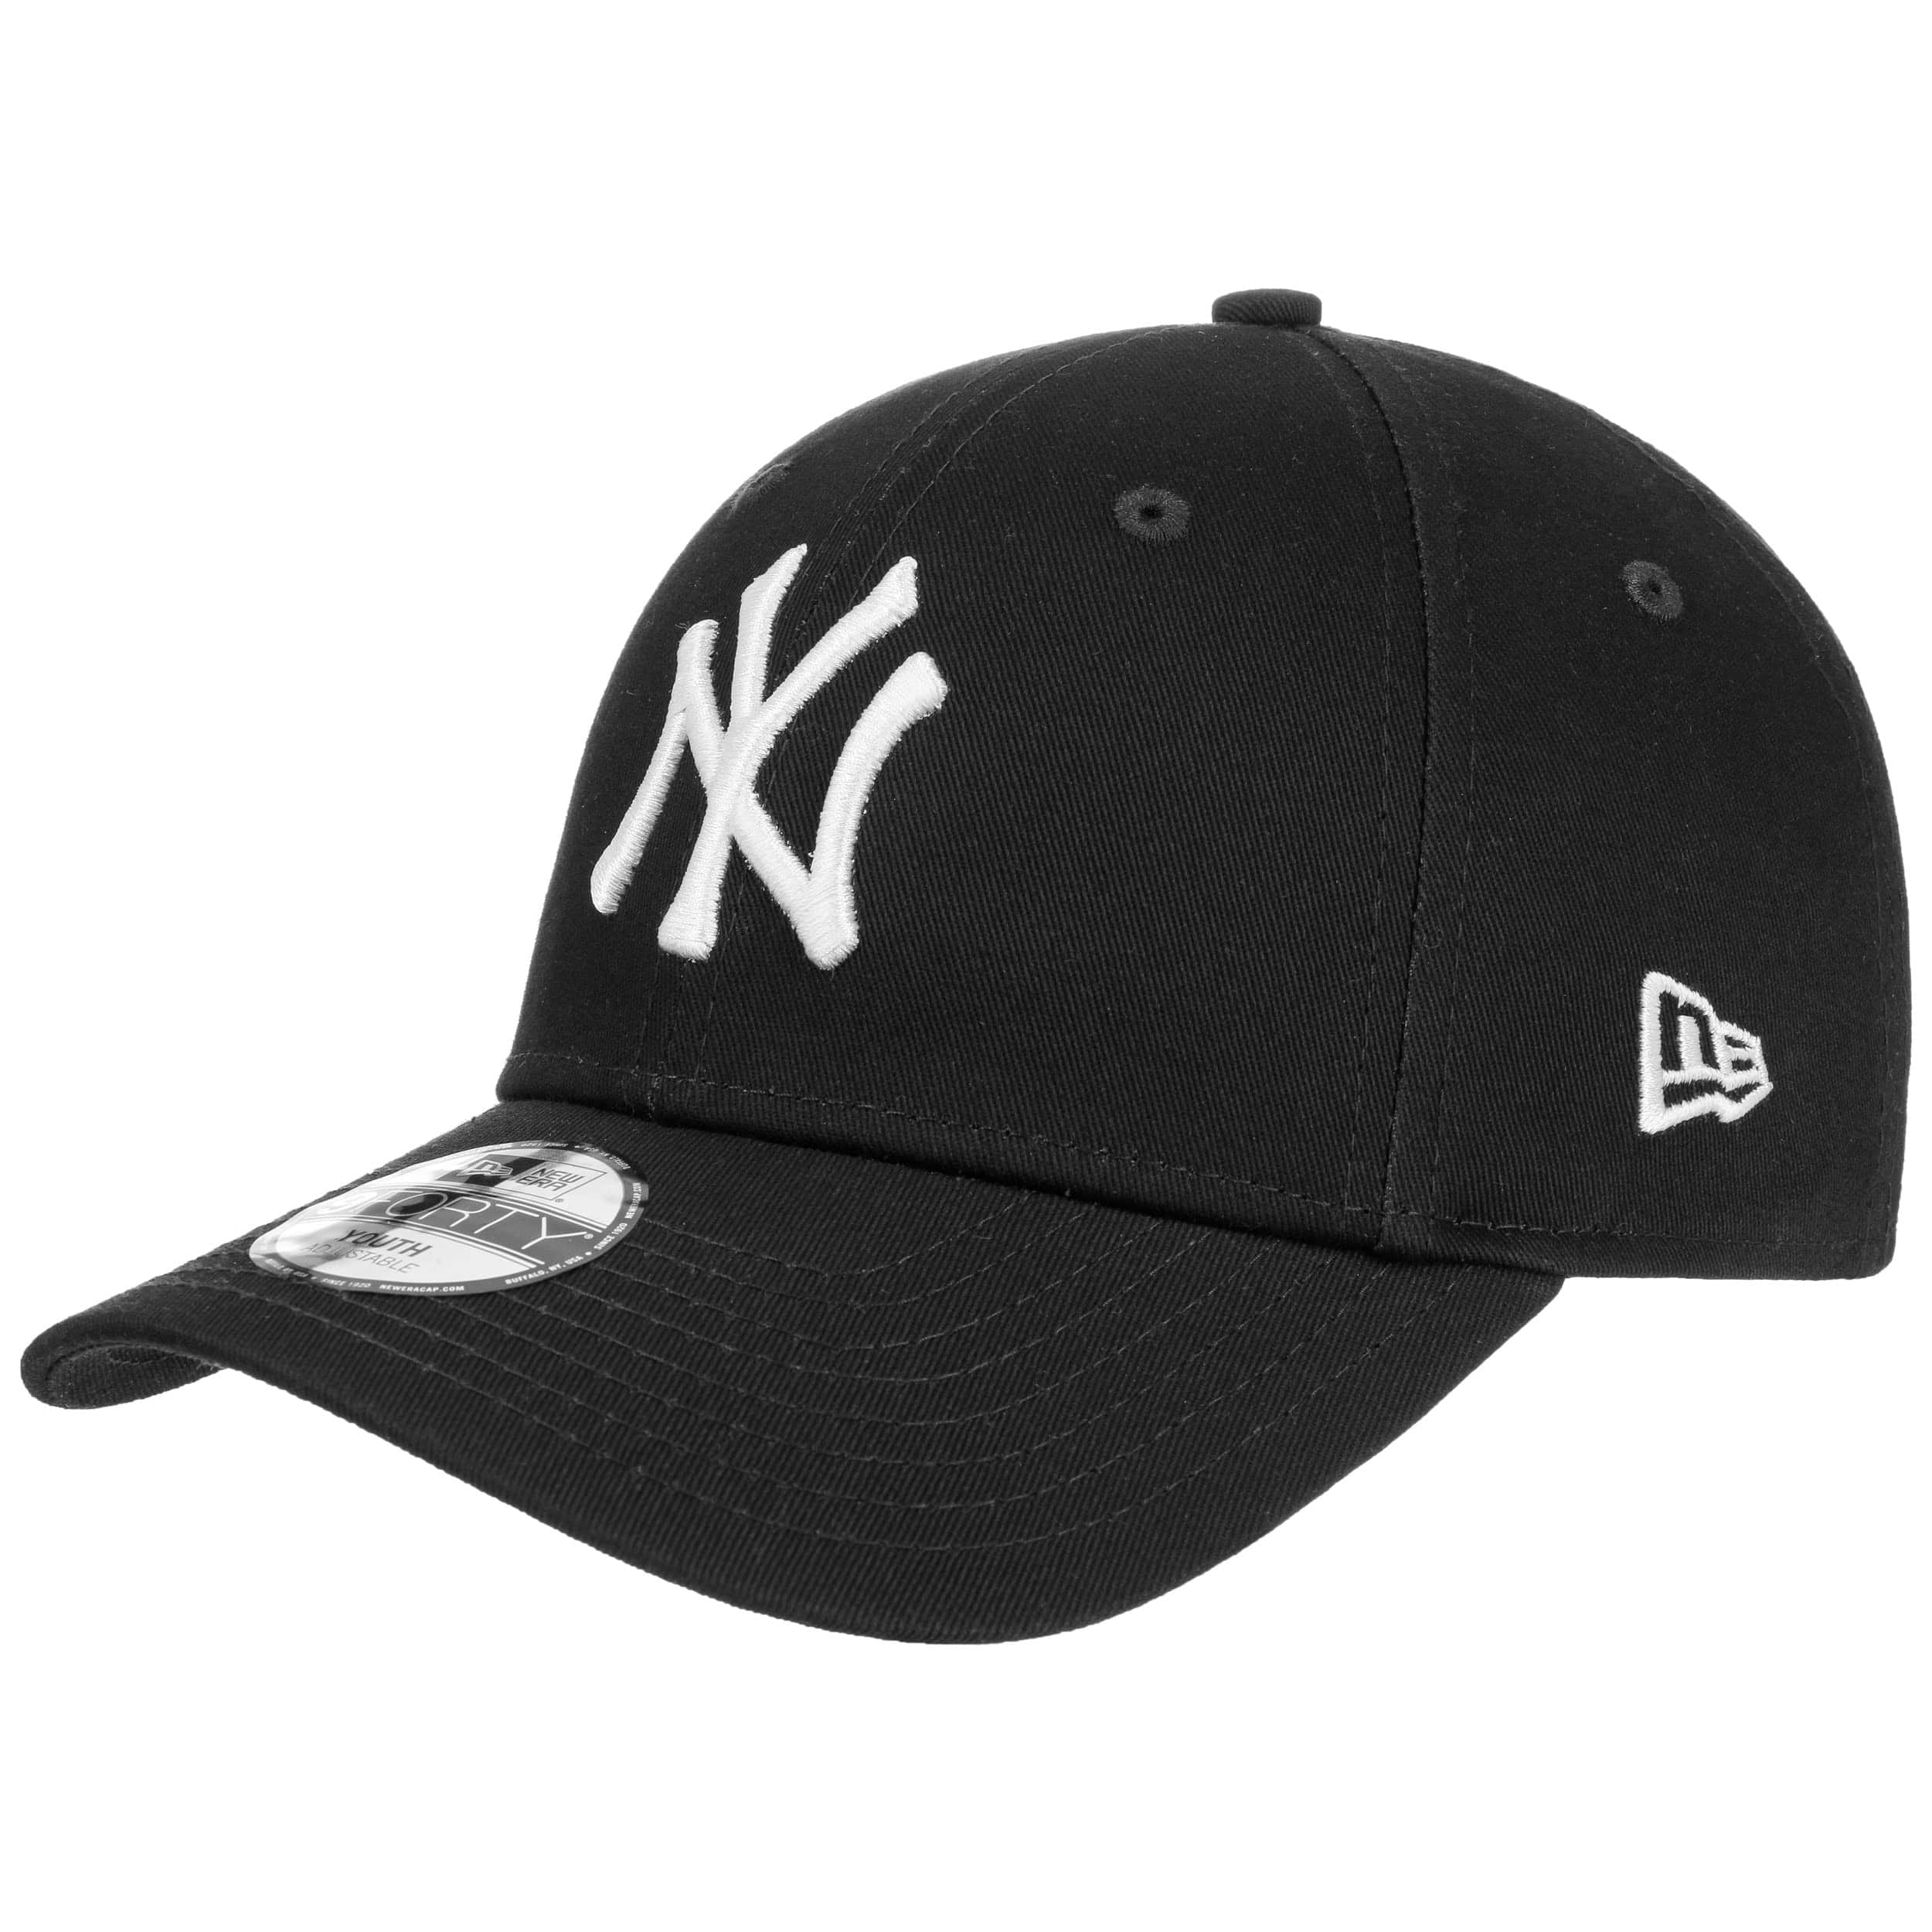 Gorra 9Forty JUNIOR NY Yankees by New Era - Gorras - sombreroshop.es f736863b052